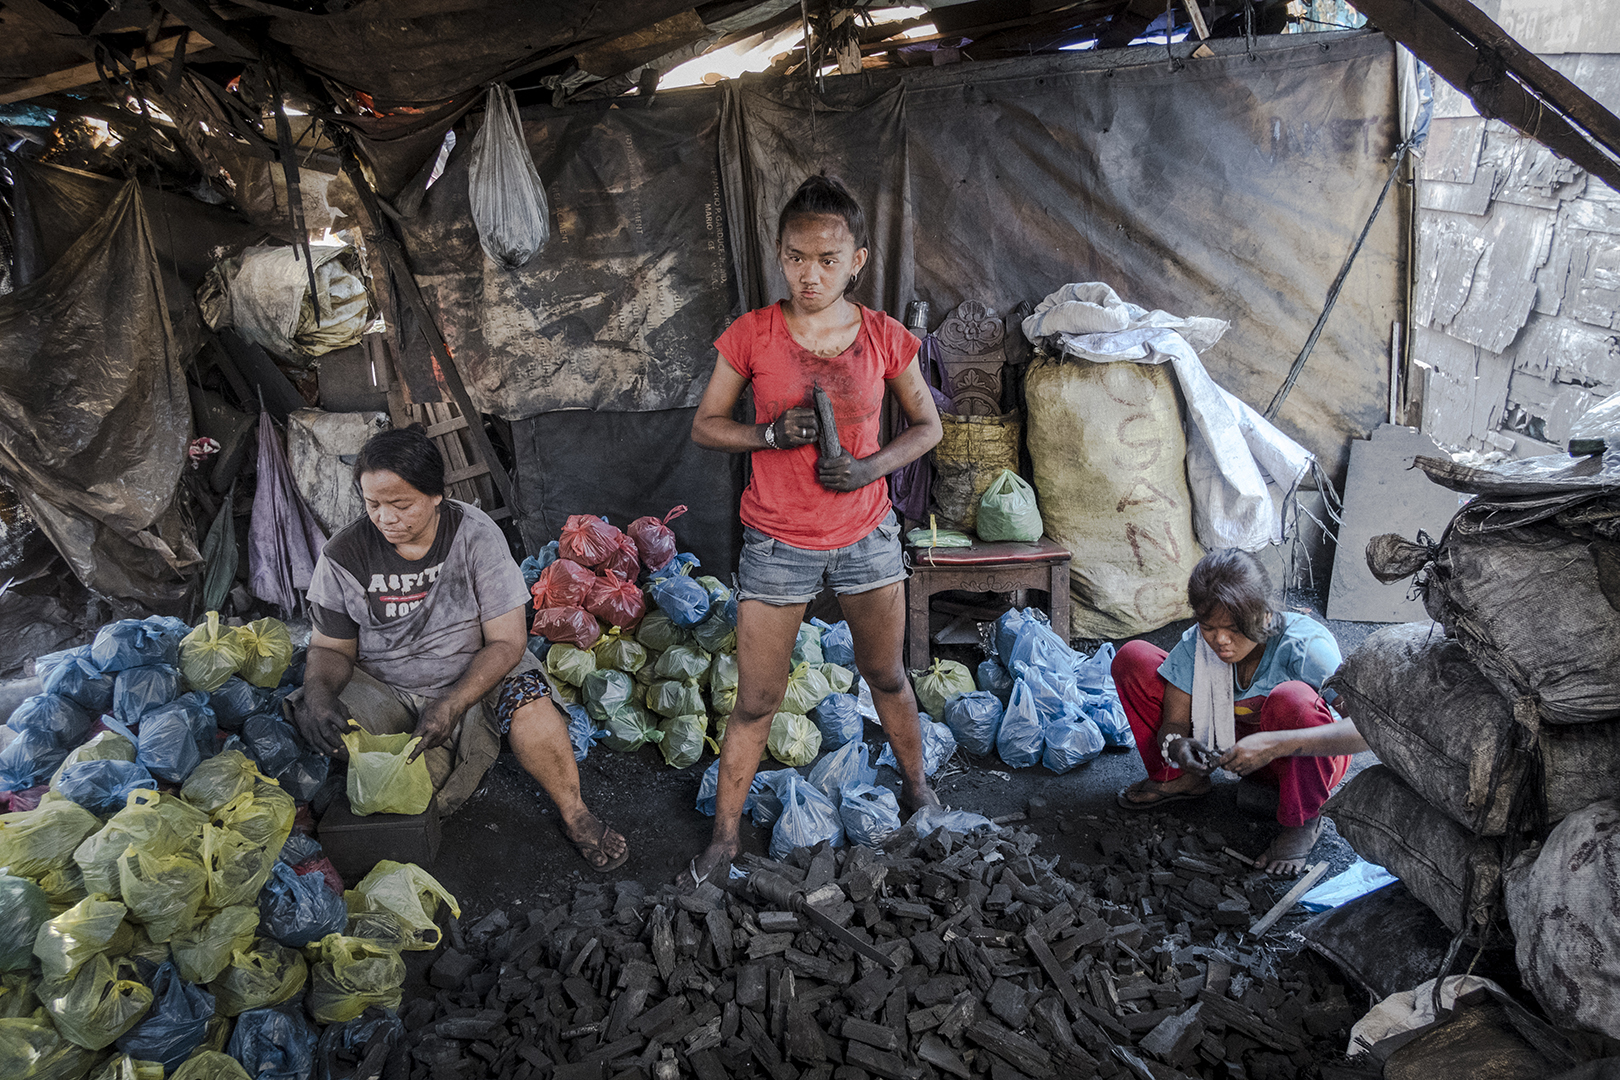 Jane-Rosa (16) stopped school at the age of 14. She is the oldest of 4 kids and works to help her parents sustain their family. She has recently moved into her boyfriends, Andrew who also works at the charcoal production, family house. Malabon, Philippines, 2017